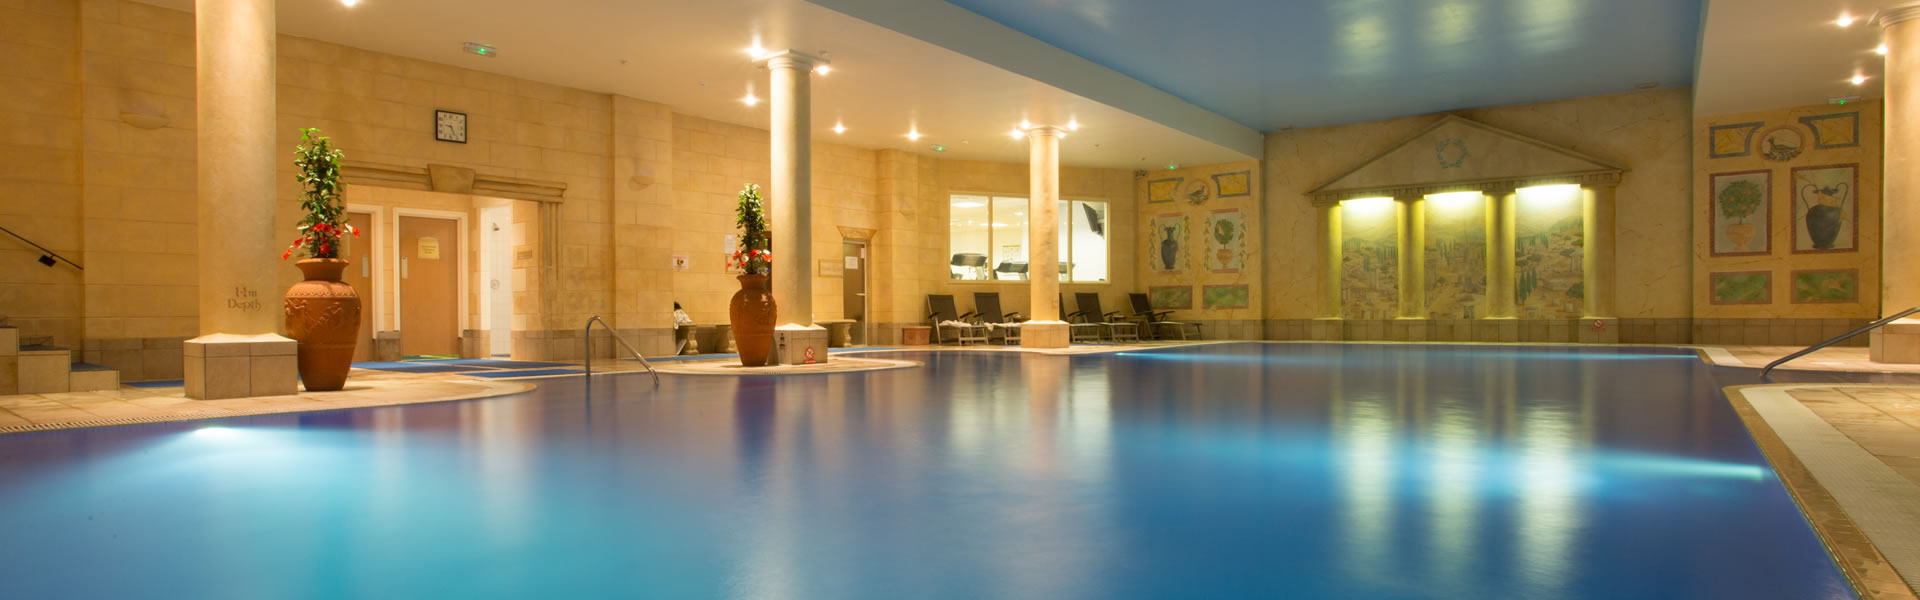 Sketchley-Grange-Leisure-Spa-Pool-5_banner